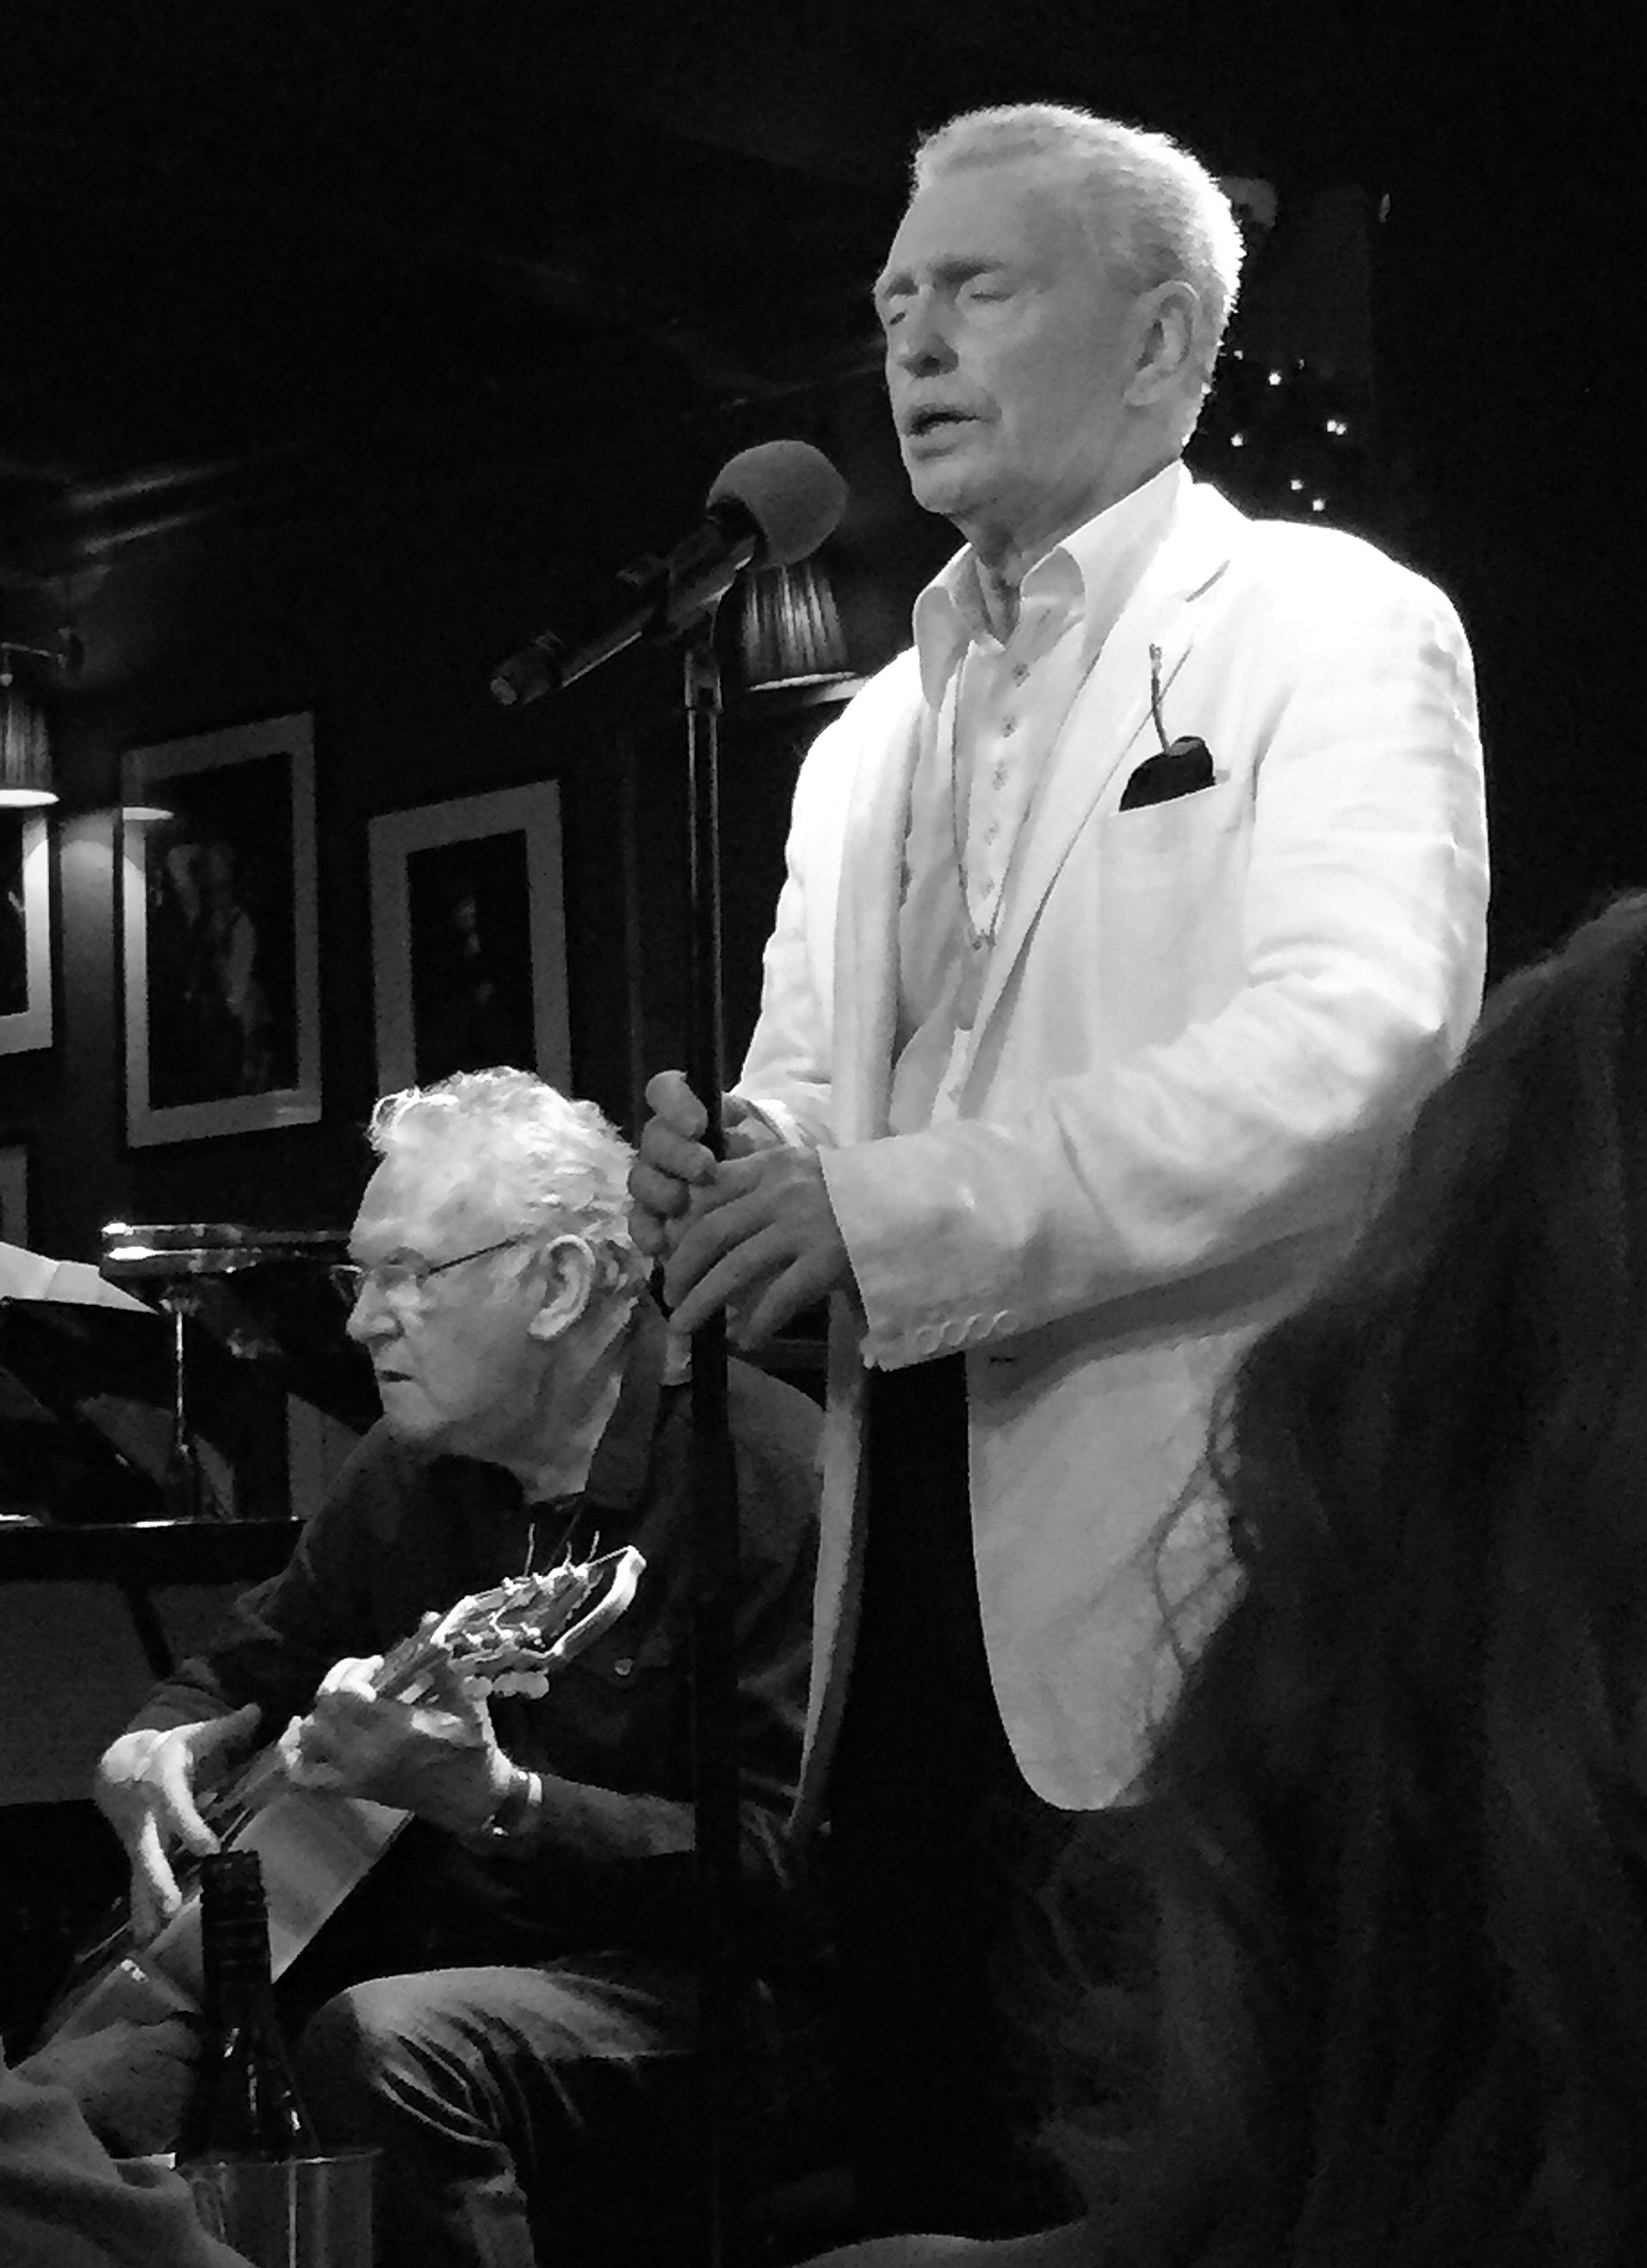 Georgie Fame at Ronnie Scott's